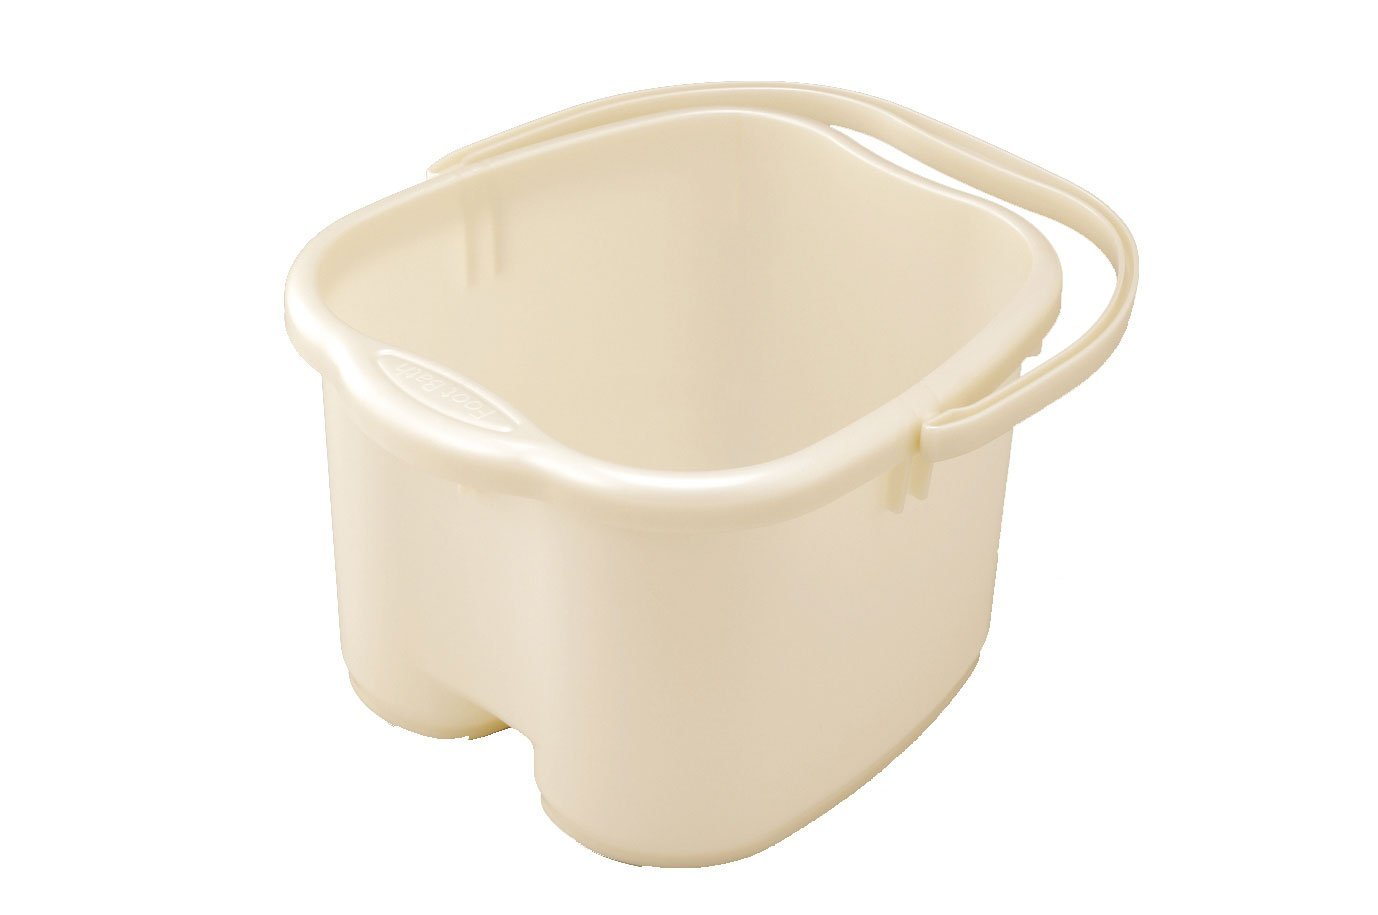 Inomata Pearl Foot Detox Massage Spa Bucket, White 2500